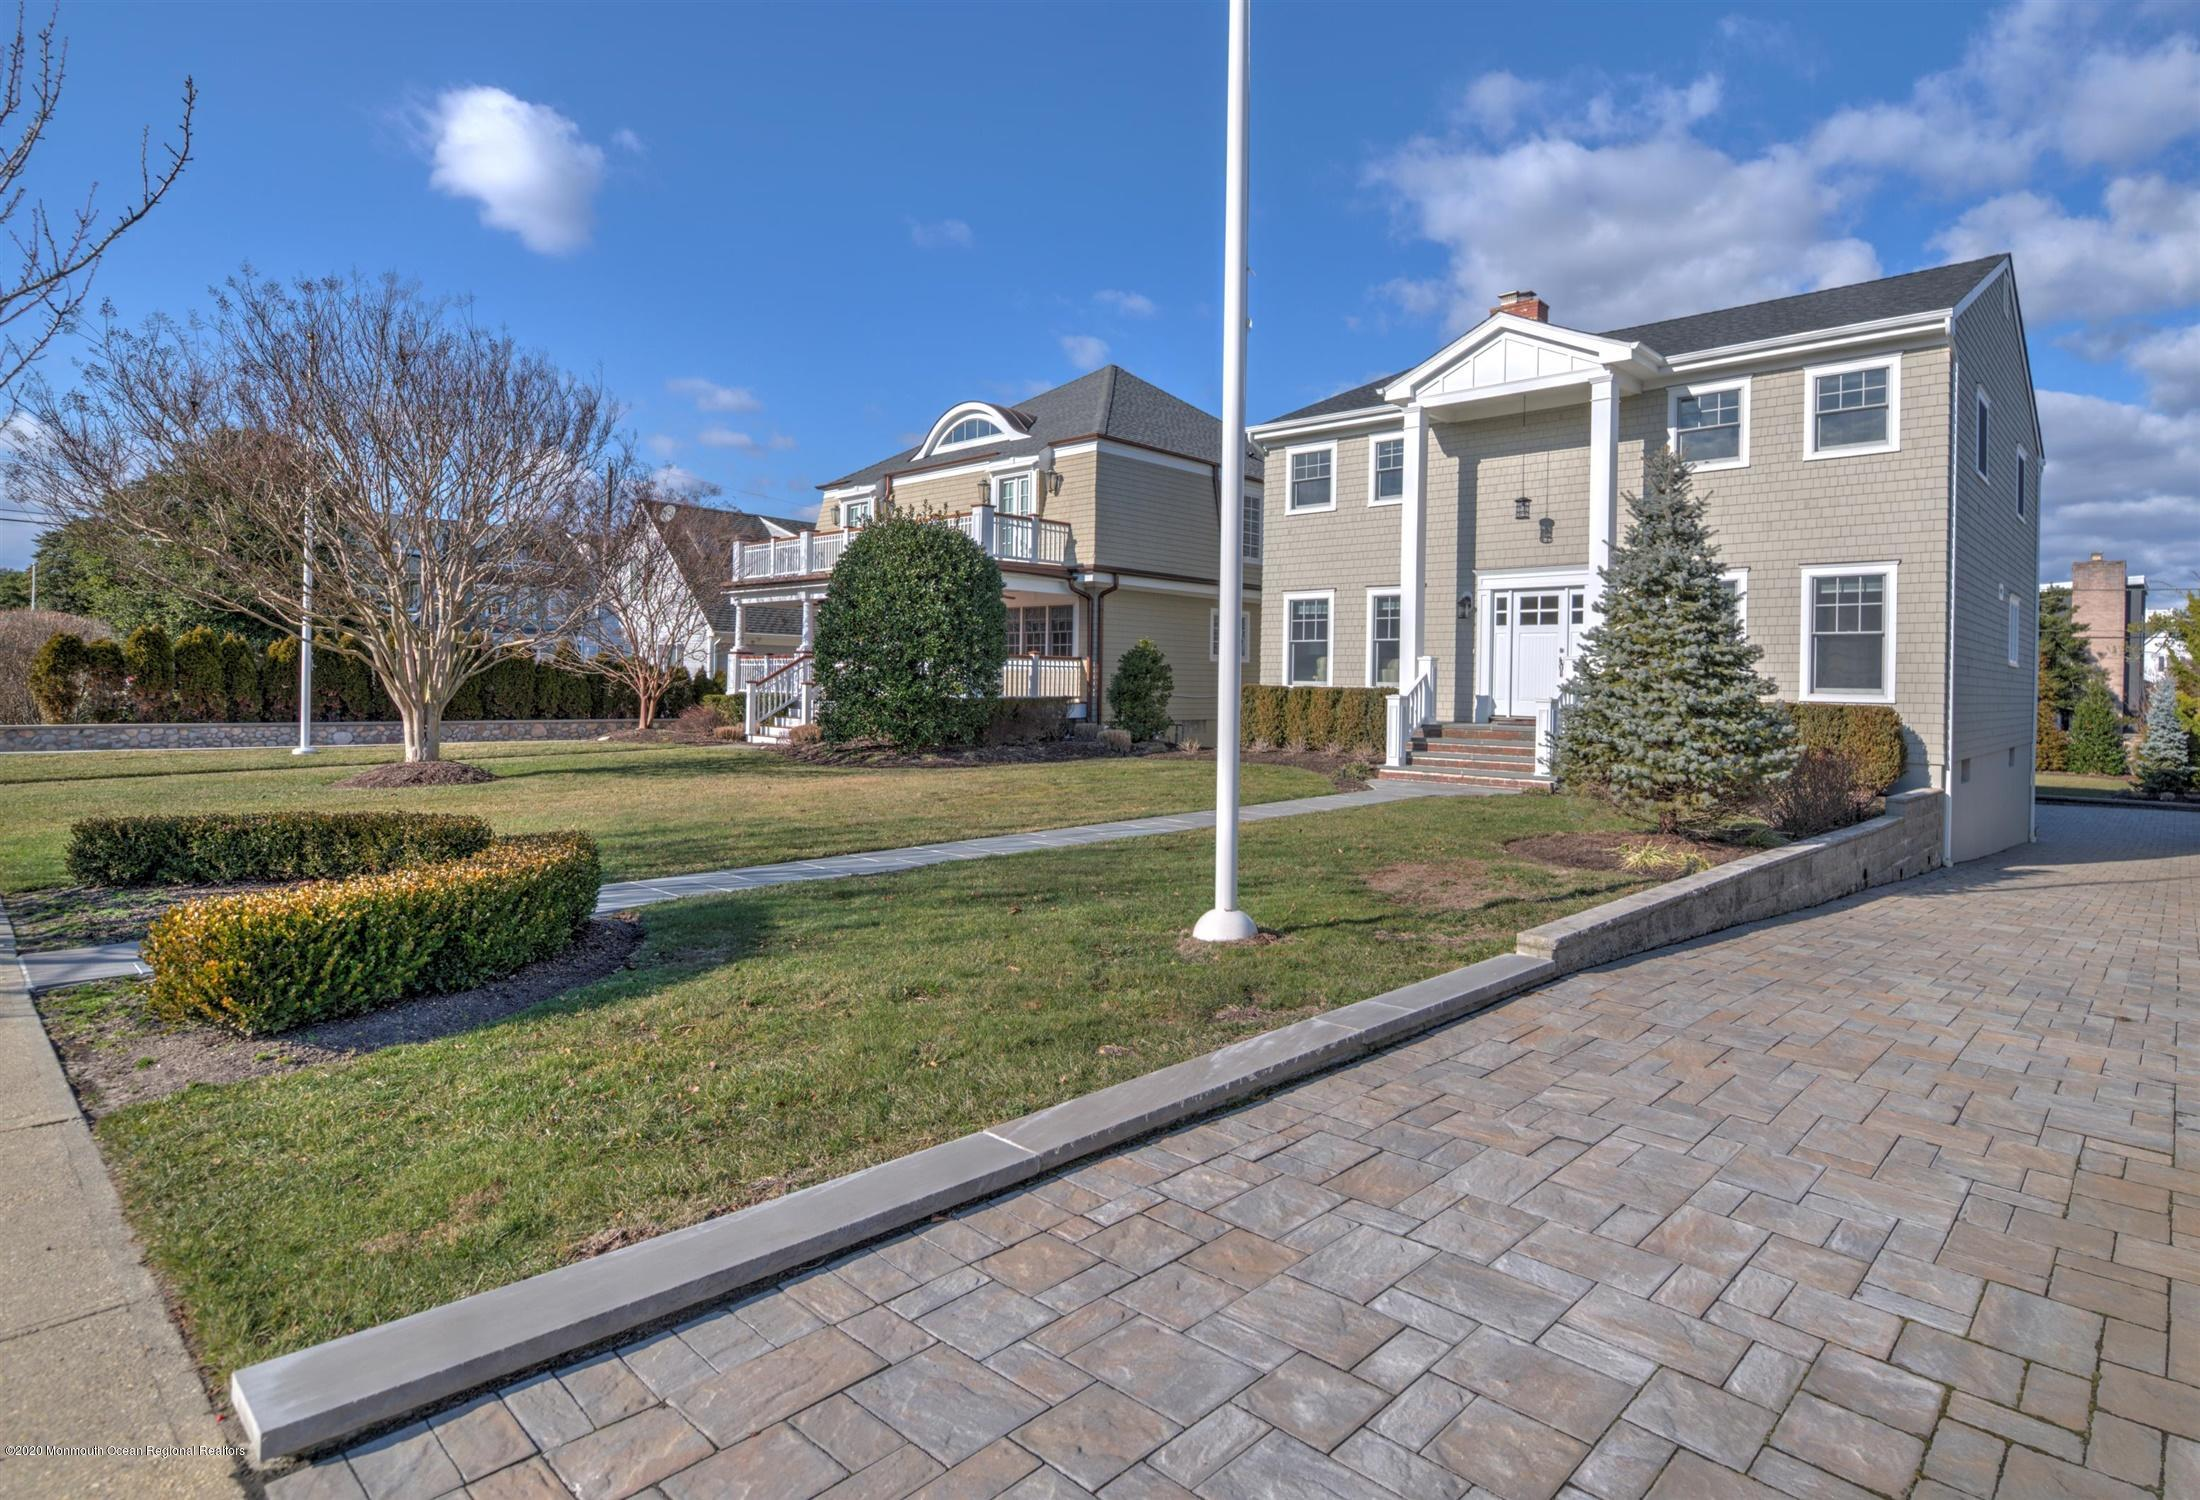 Photo of 7 Philadelphia Boulevard, Sea Girt, NJ 08750